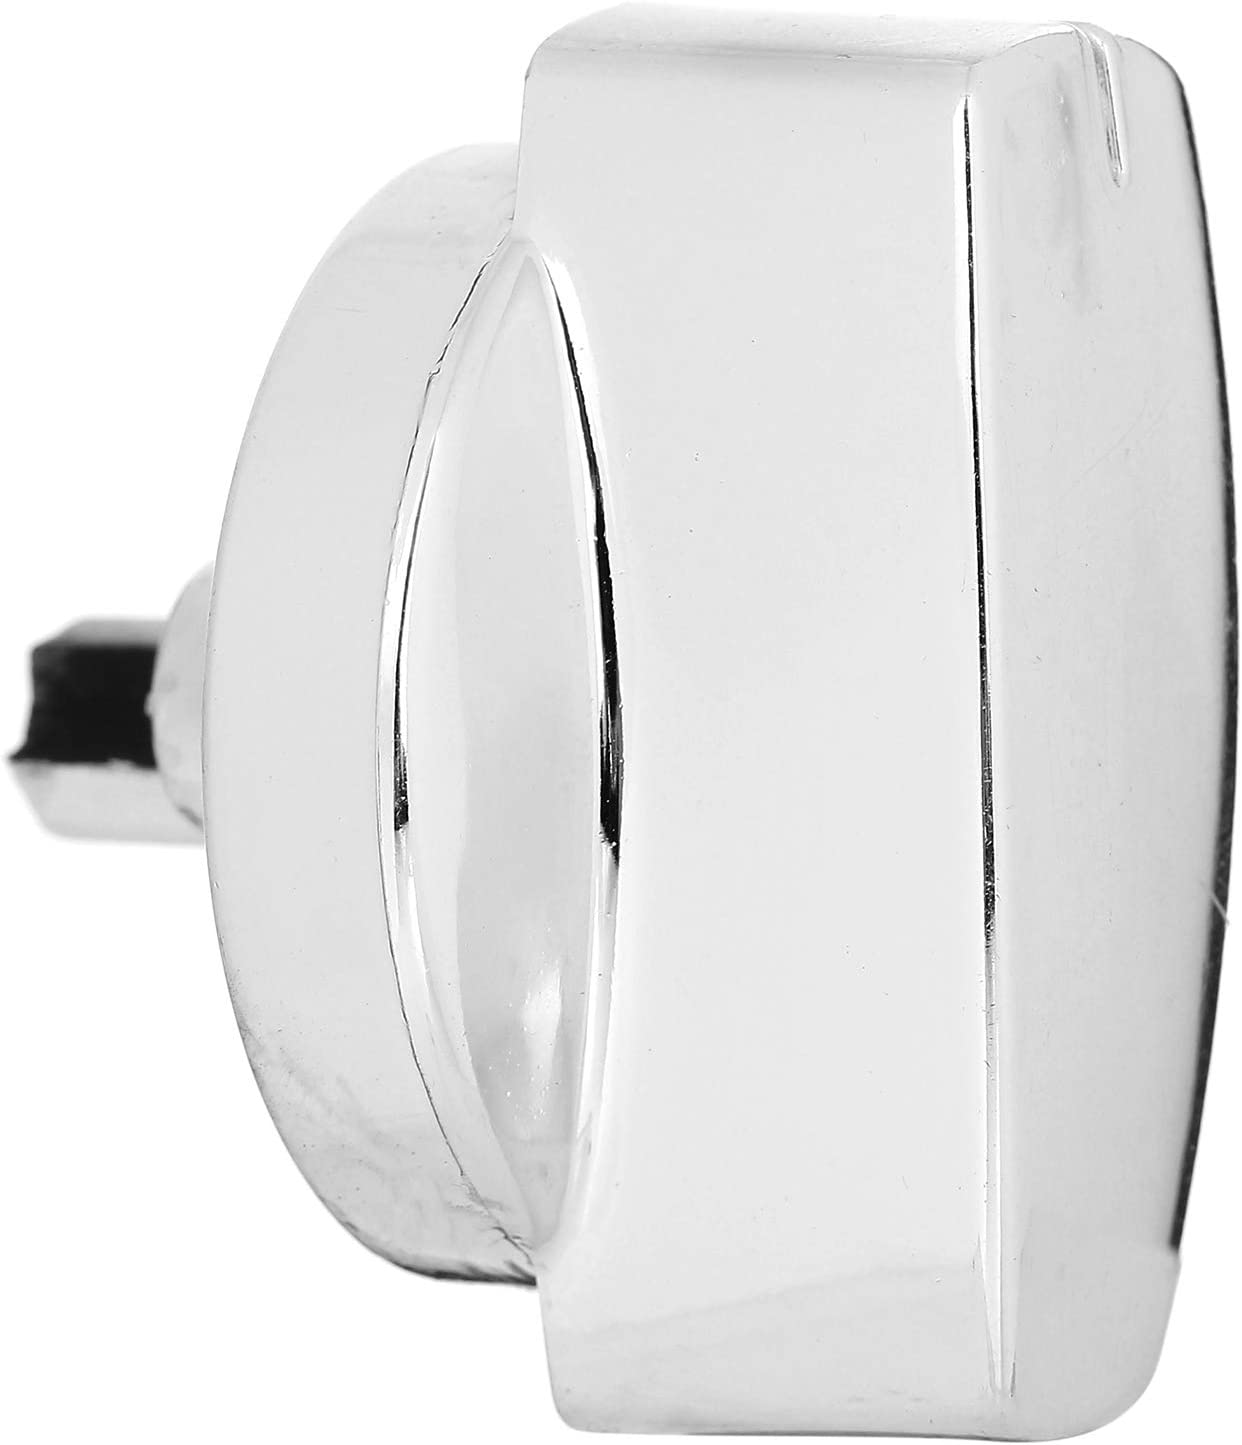 444445410 Countryrange /& 100DF Range Cookers 1 First4spares Replacement Chrome Control Knob for Belling 444440222 444445413